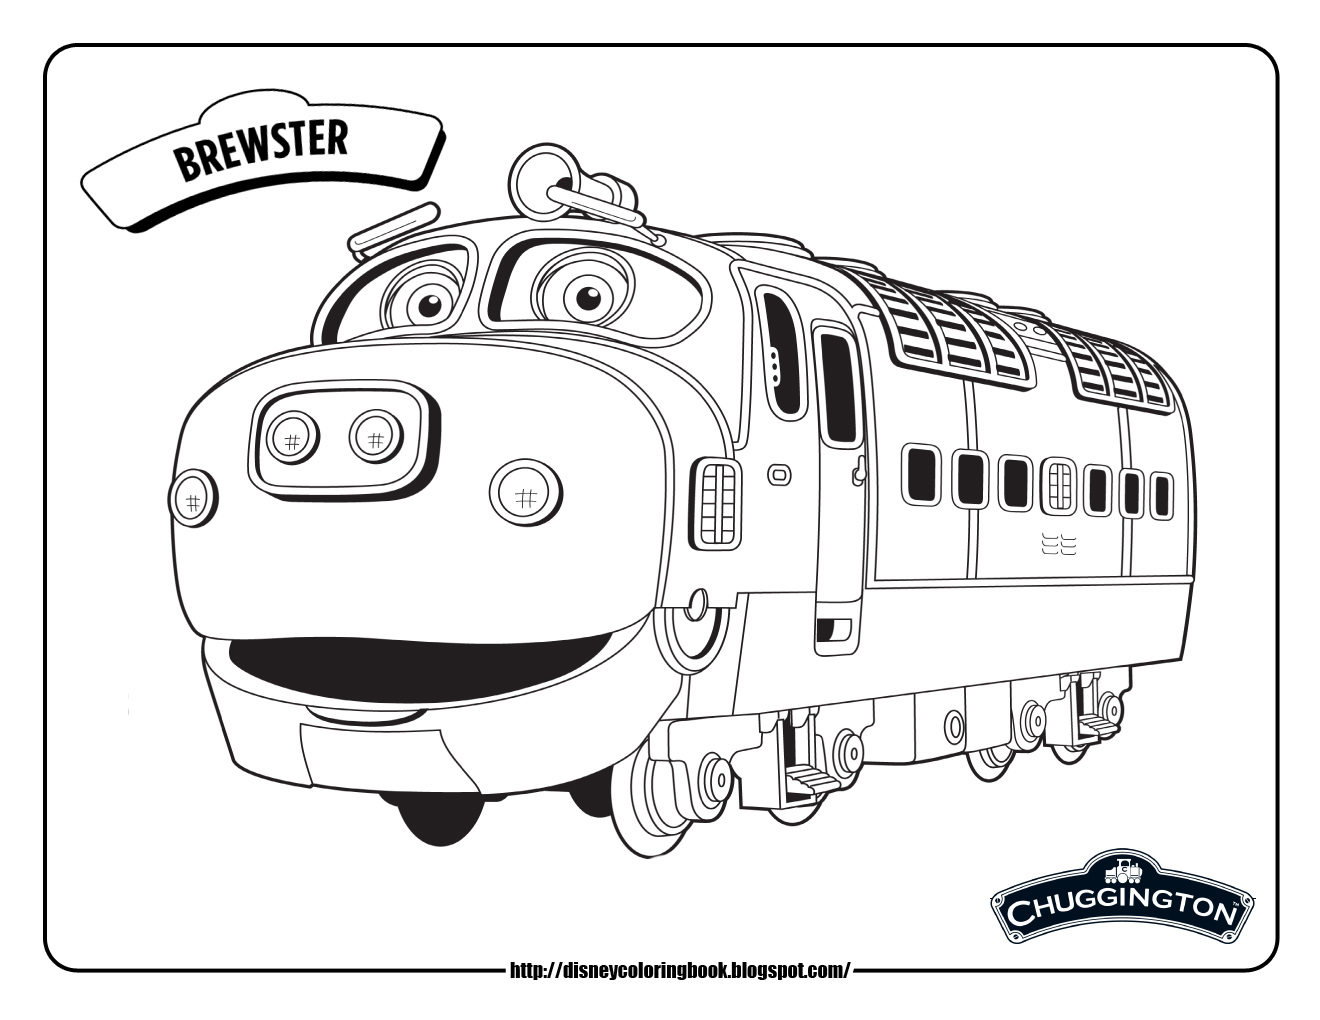 chuggington brewster train coloring pages